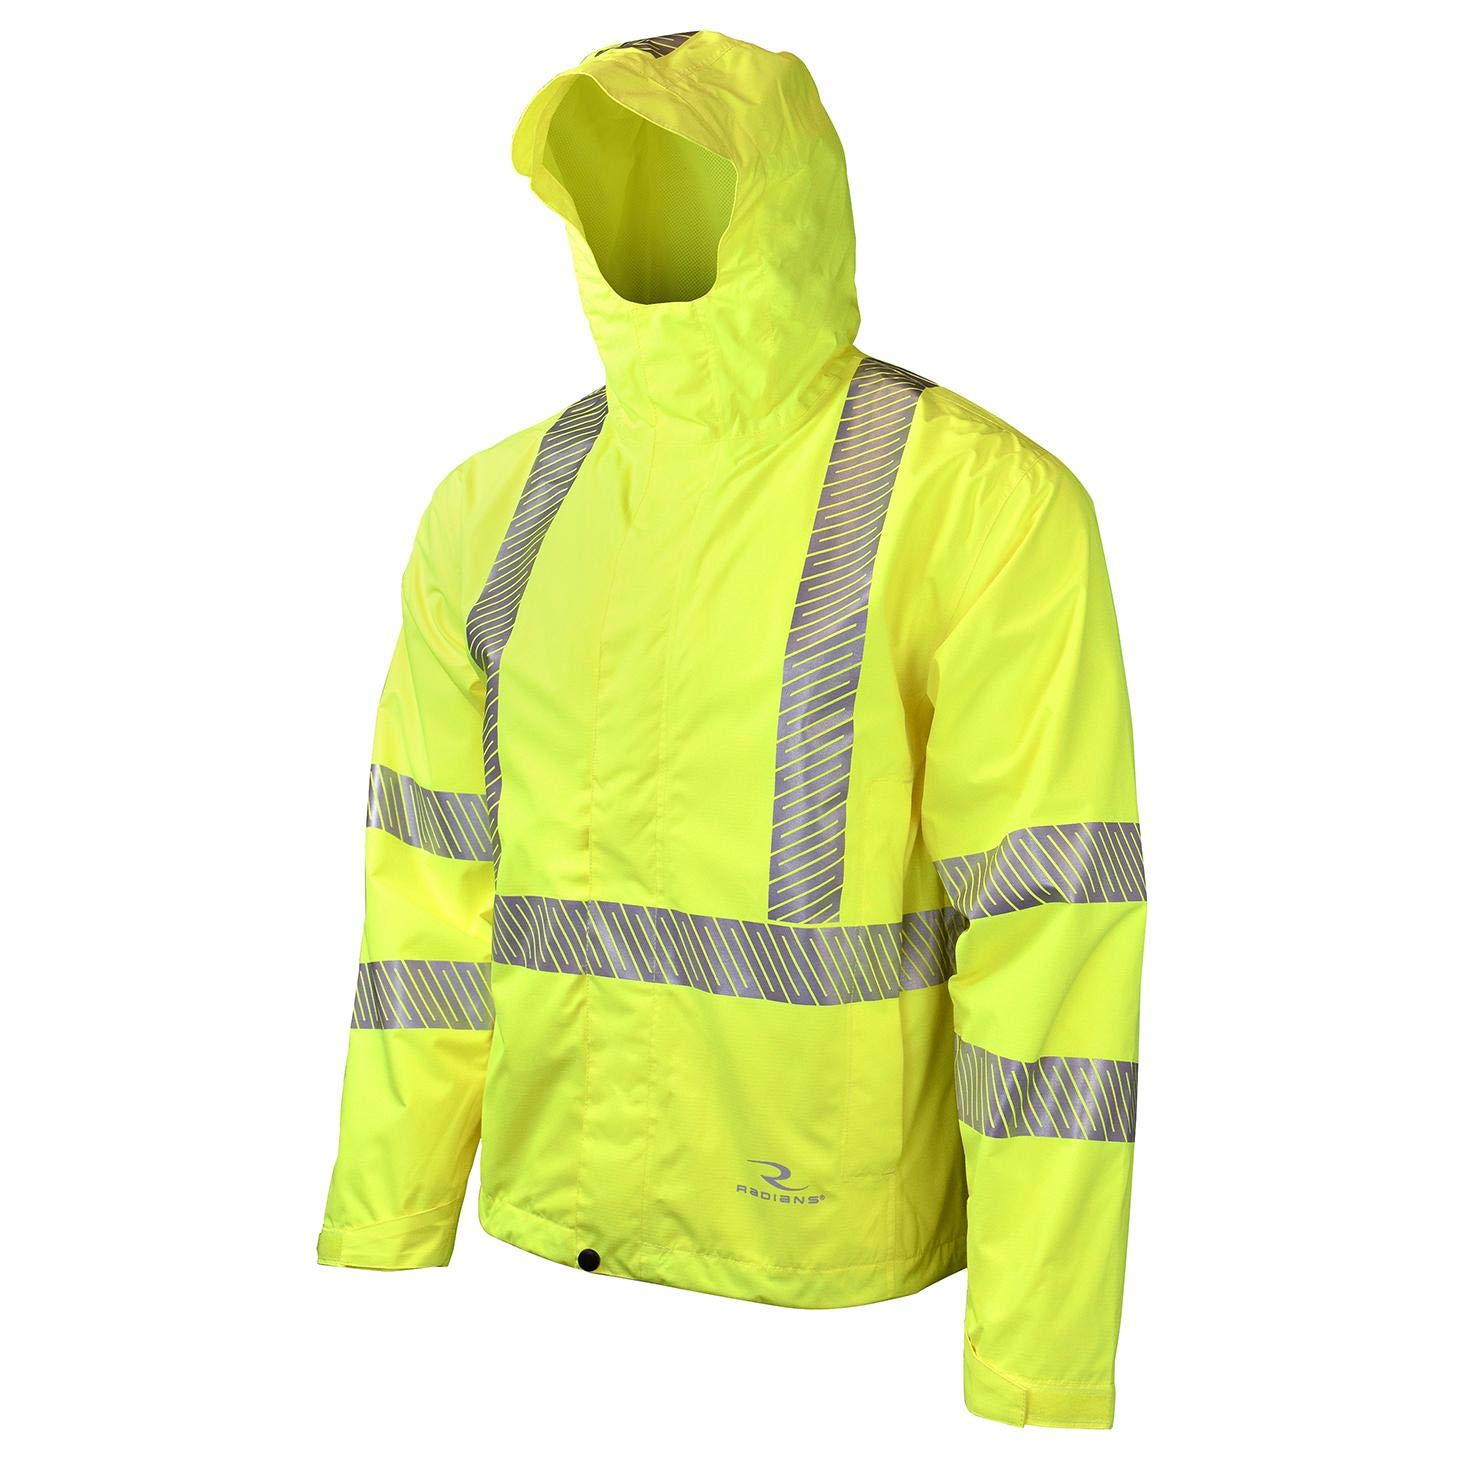 Radians RW11-3ZGR Lightweight Waterproof Rain Jacket, Large, Green